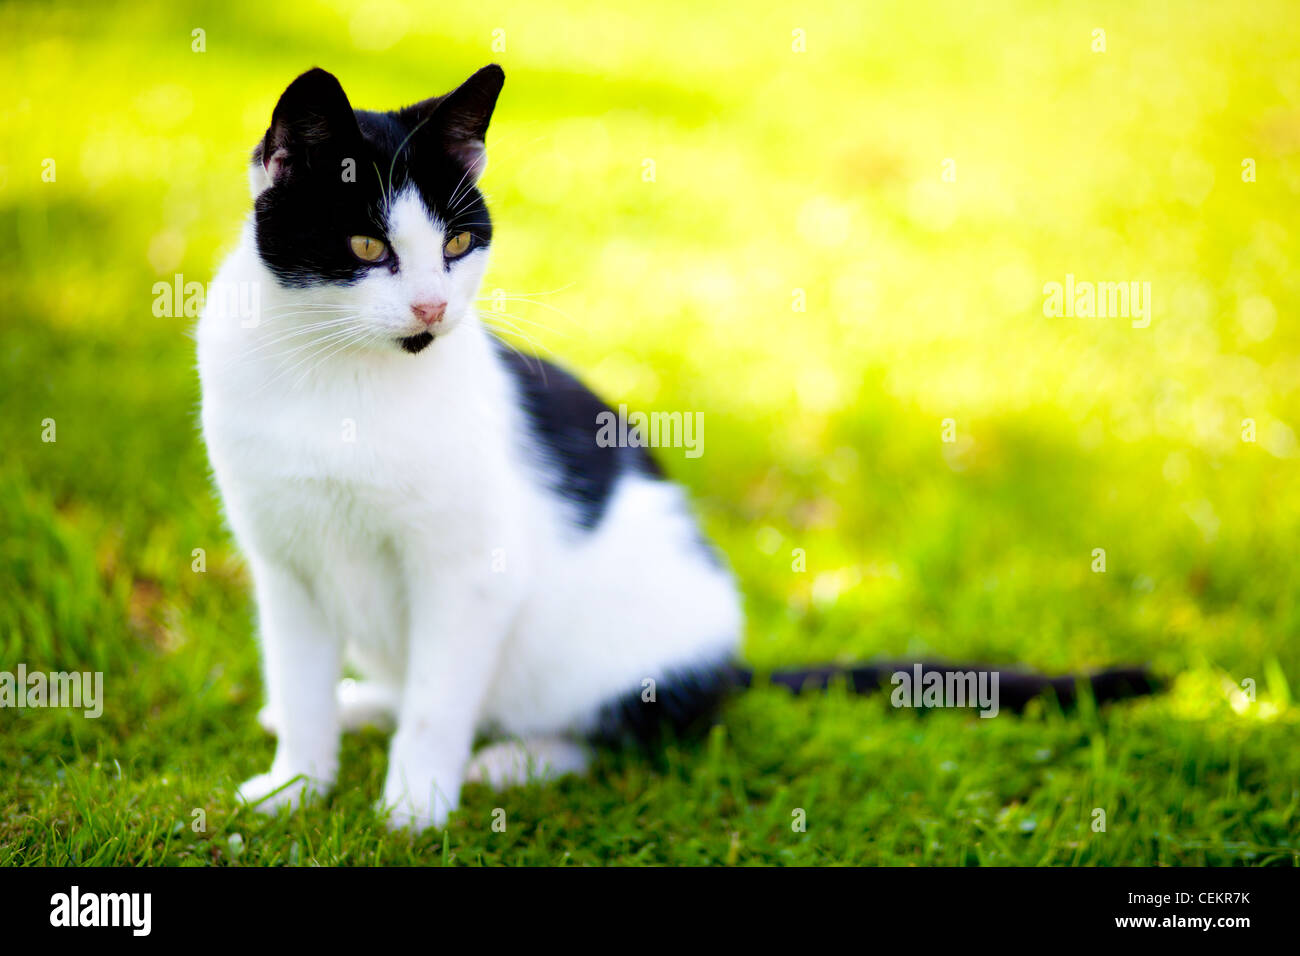 stray cat - felis catus - sitting on green grass and looking with intense - Stock Image